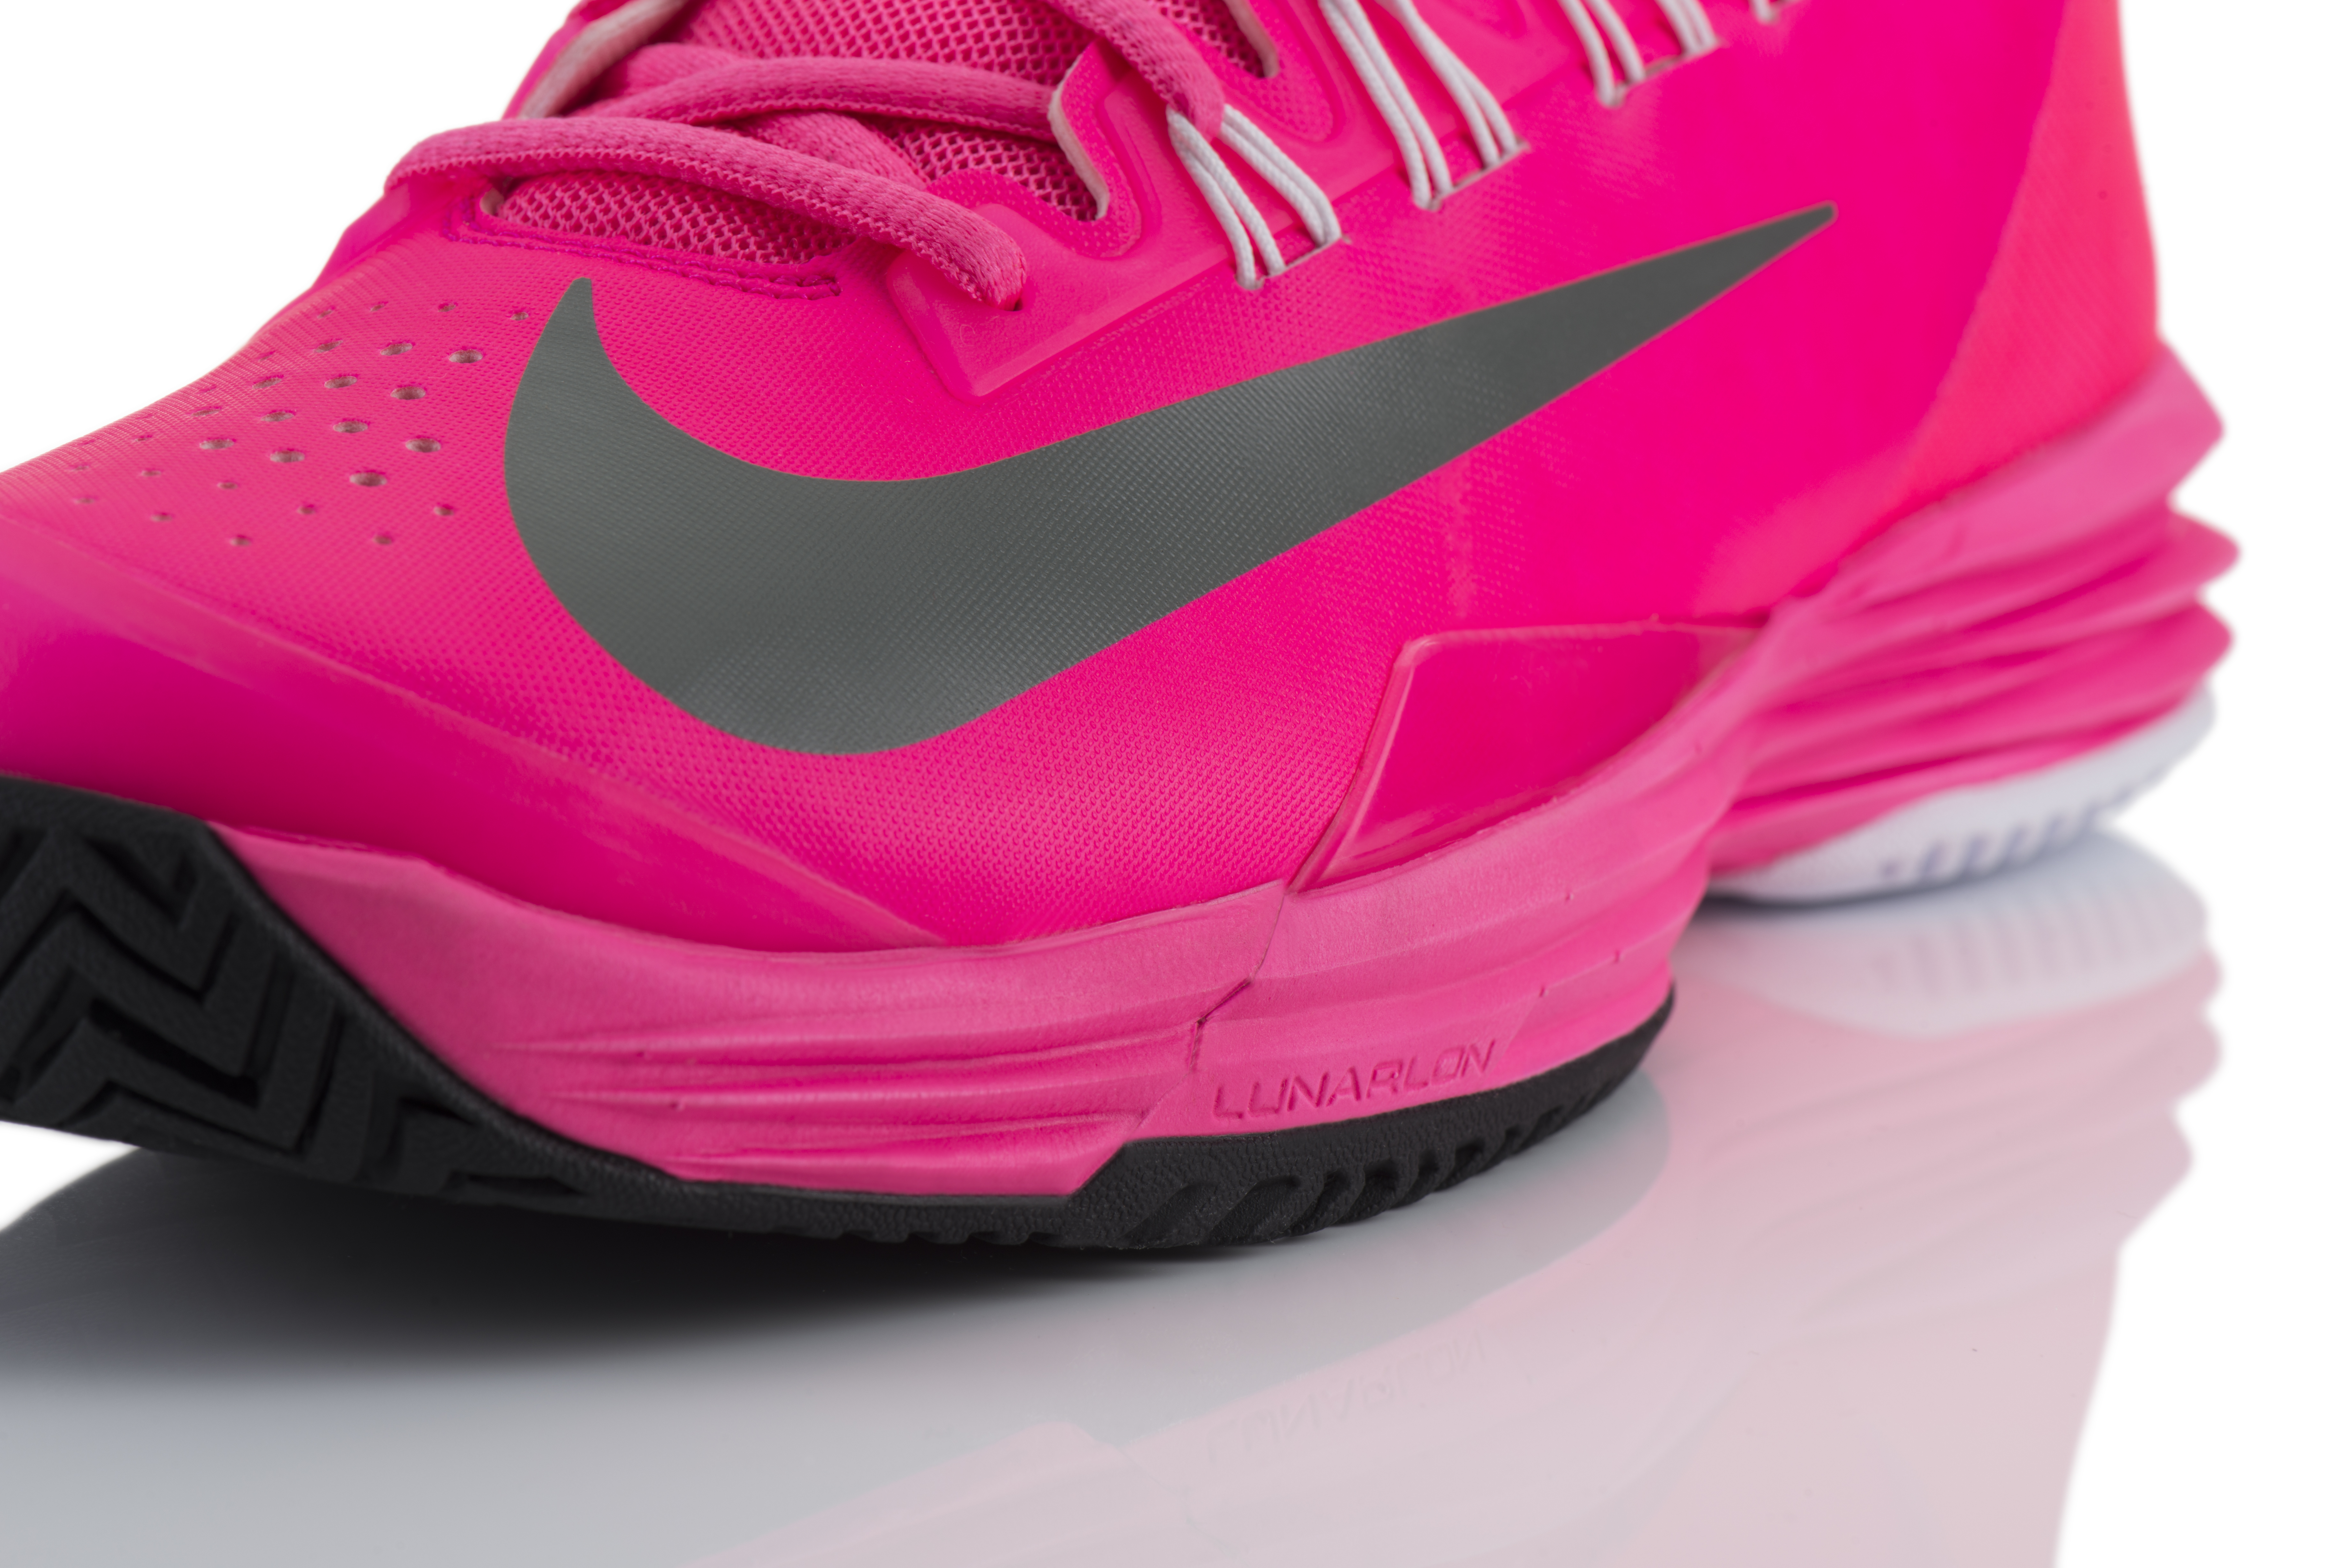 shoes zoom zoomx hi introducing original featuring most vaporfly nike the comfortable running comforter elite news lo